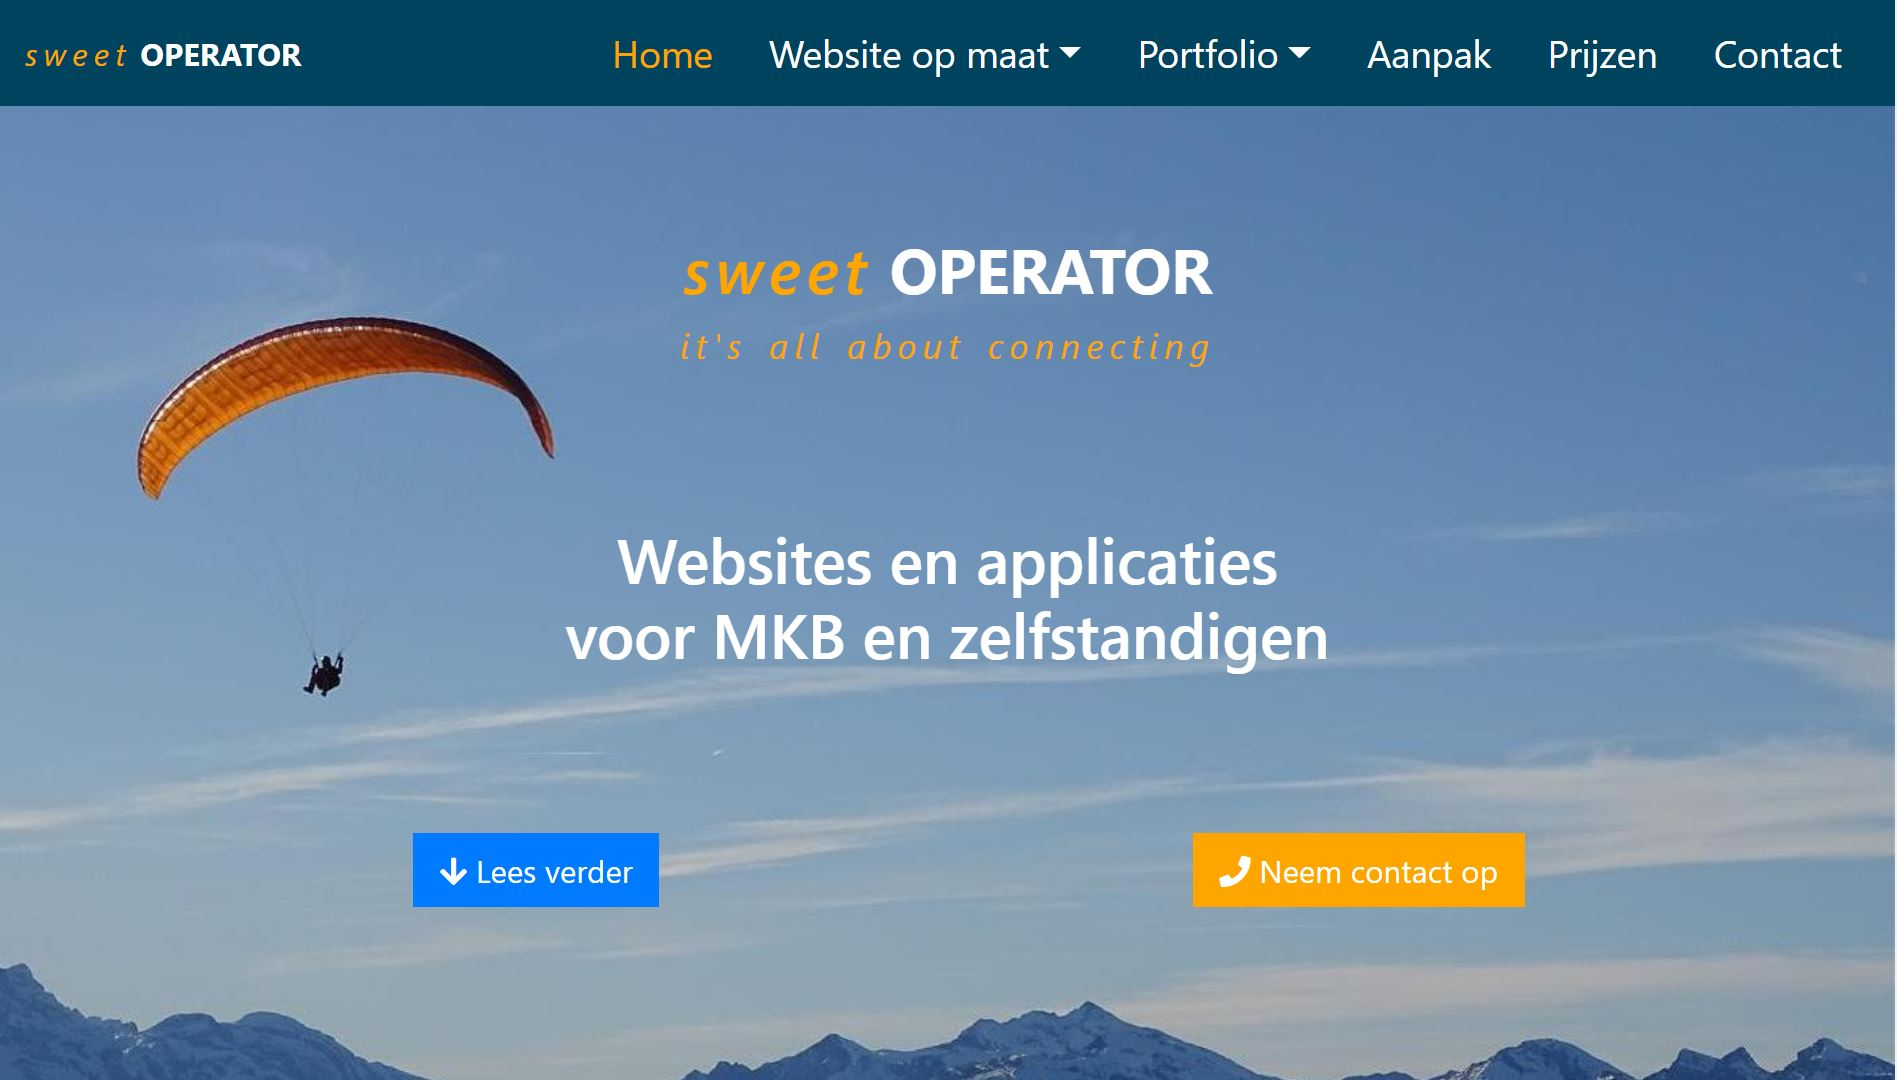 Websites and applicaties voor MKB en zelfstandigen